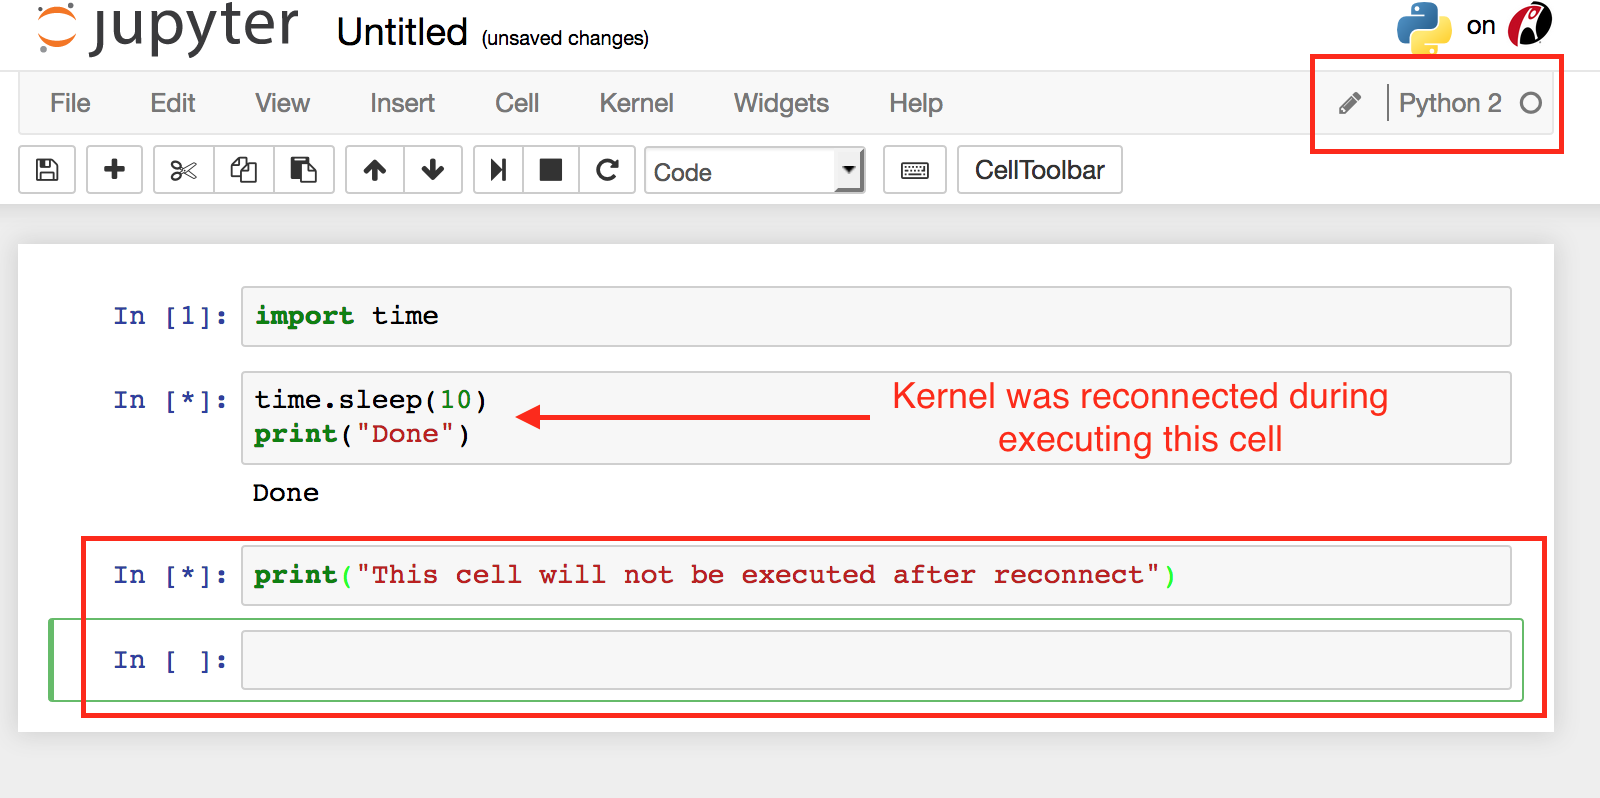 Kernel stops responding if the kernel is reconnected during code